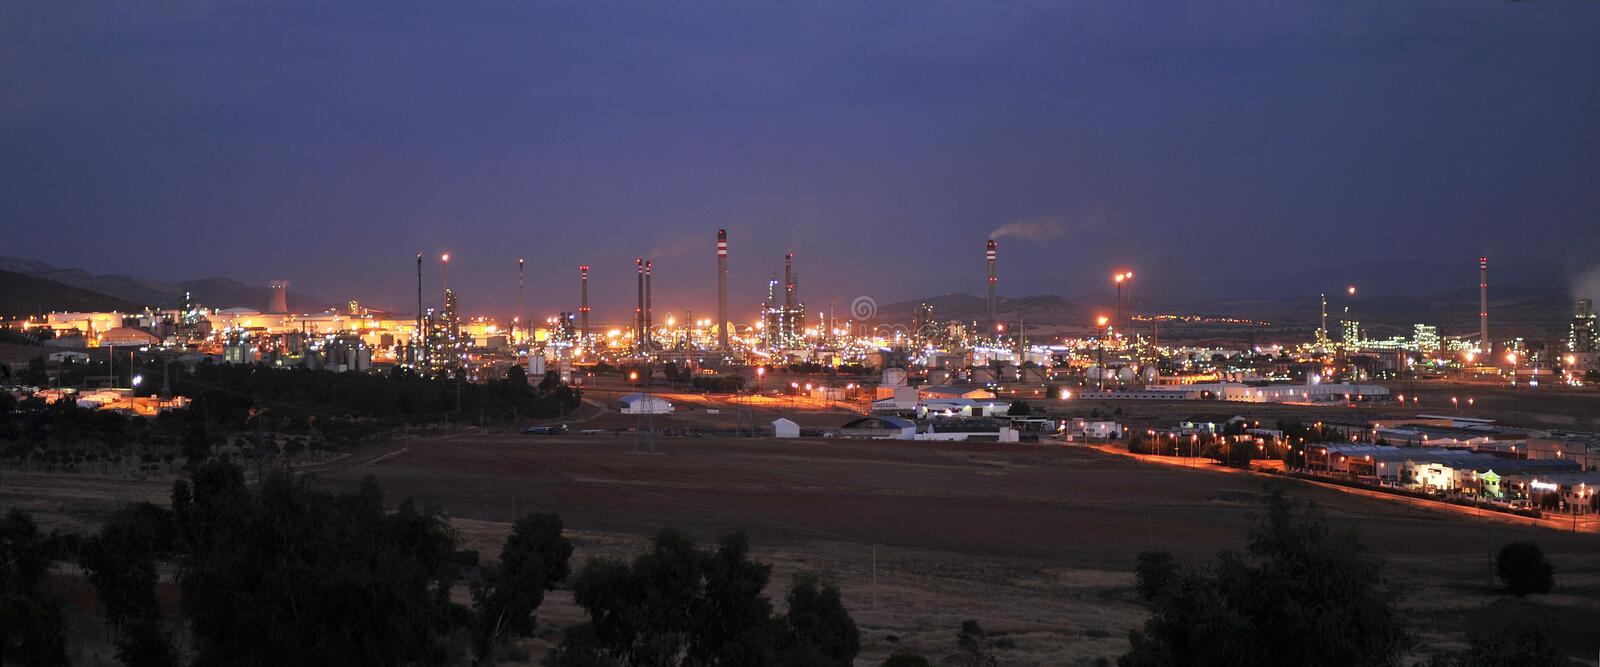 Oil refinery of Puertollano at night, Ciudad Real province, Spain. Petrochemical industrial complex for production of petroleum products located in Puertollano royalty free stock image